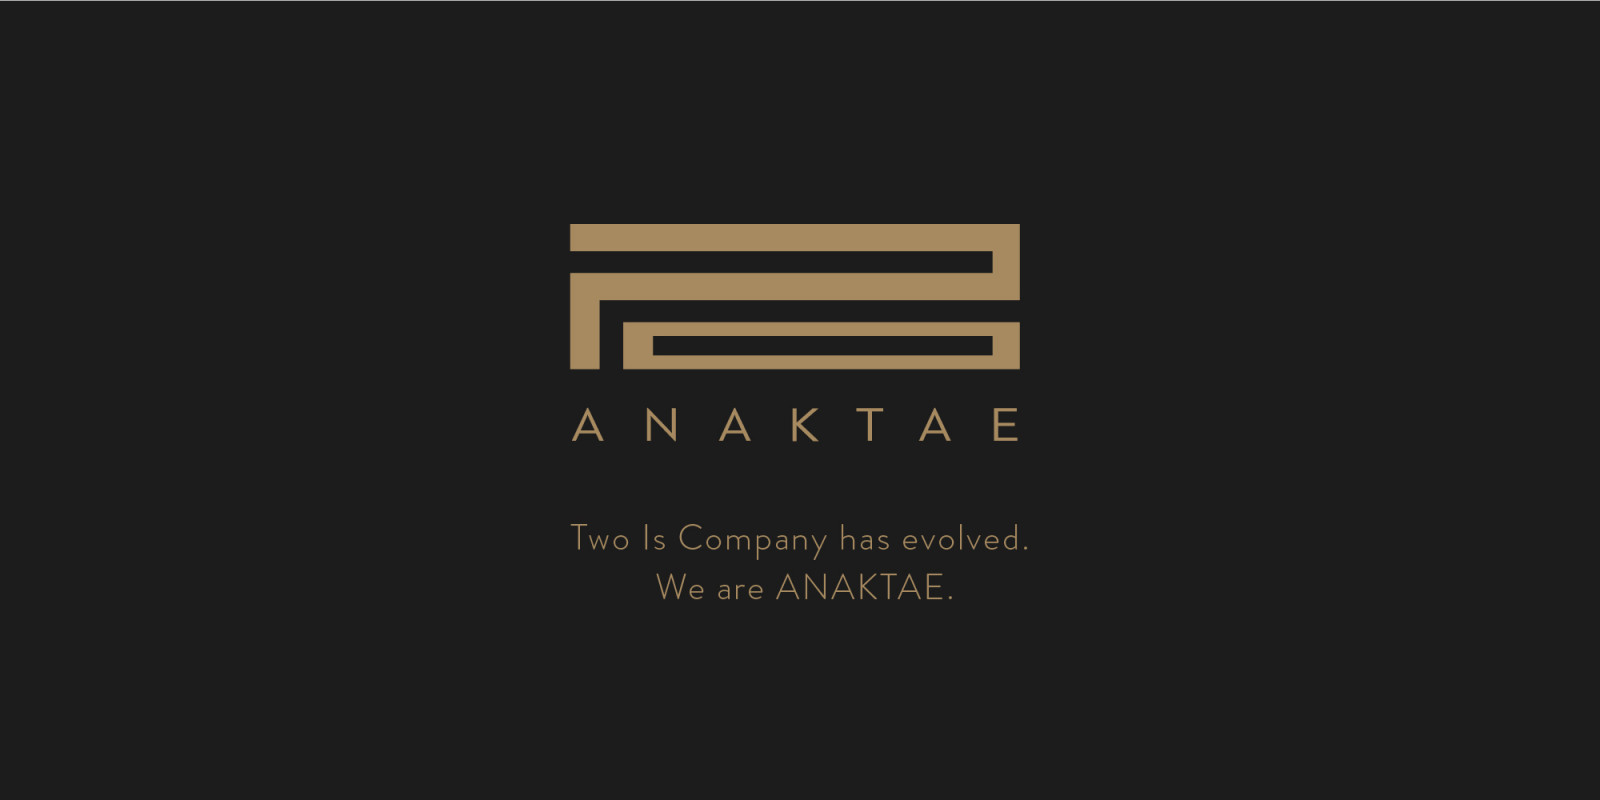 Two is Company has evolved. We are ANAKTAE.